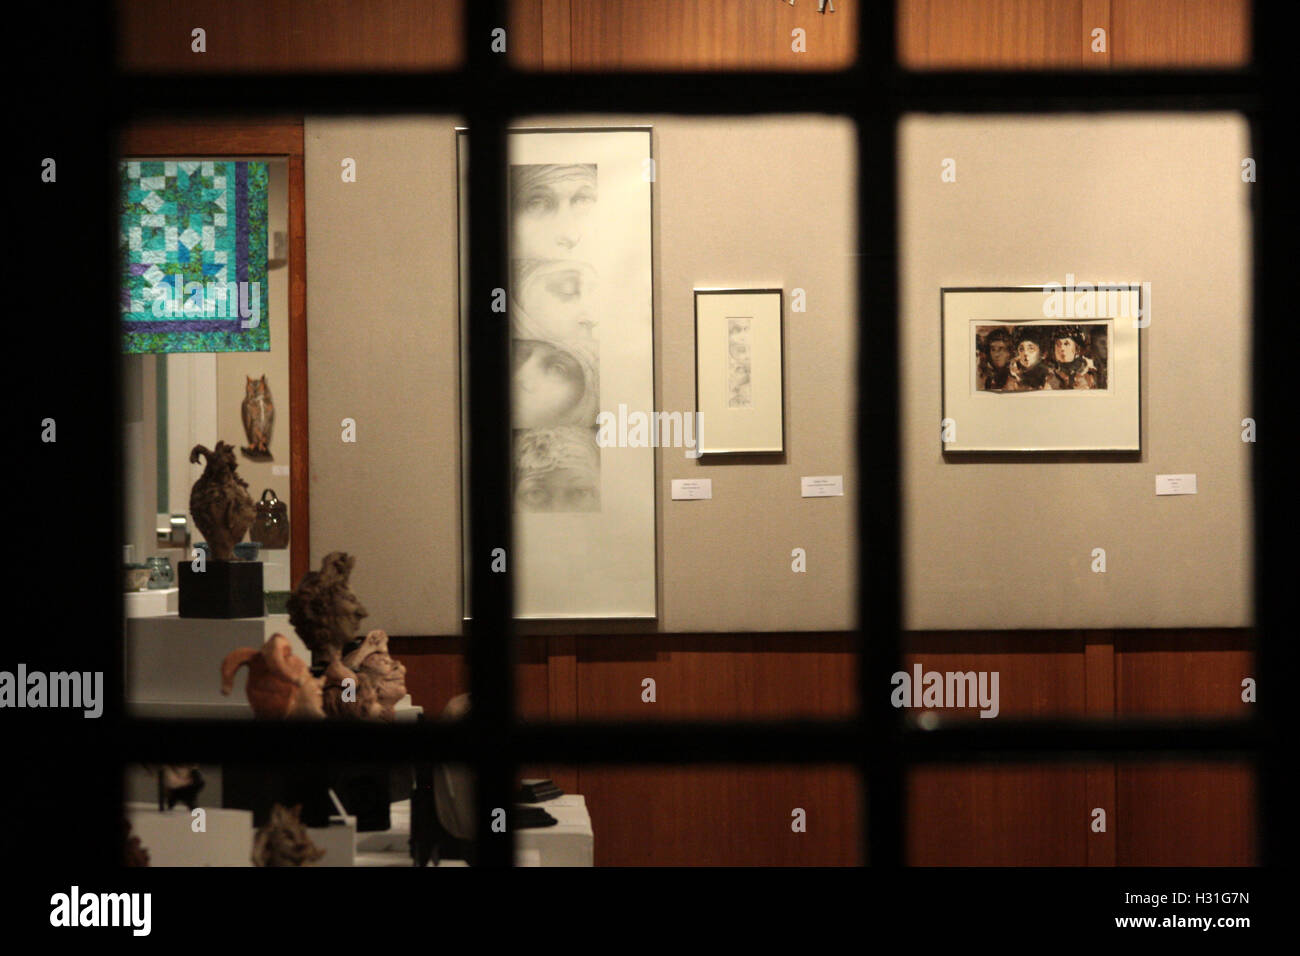 Display of framed art on the walls of an art gallery - Stock Image